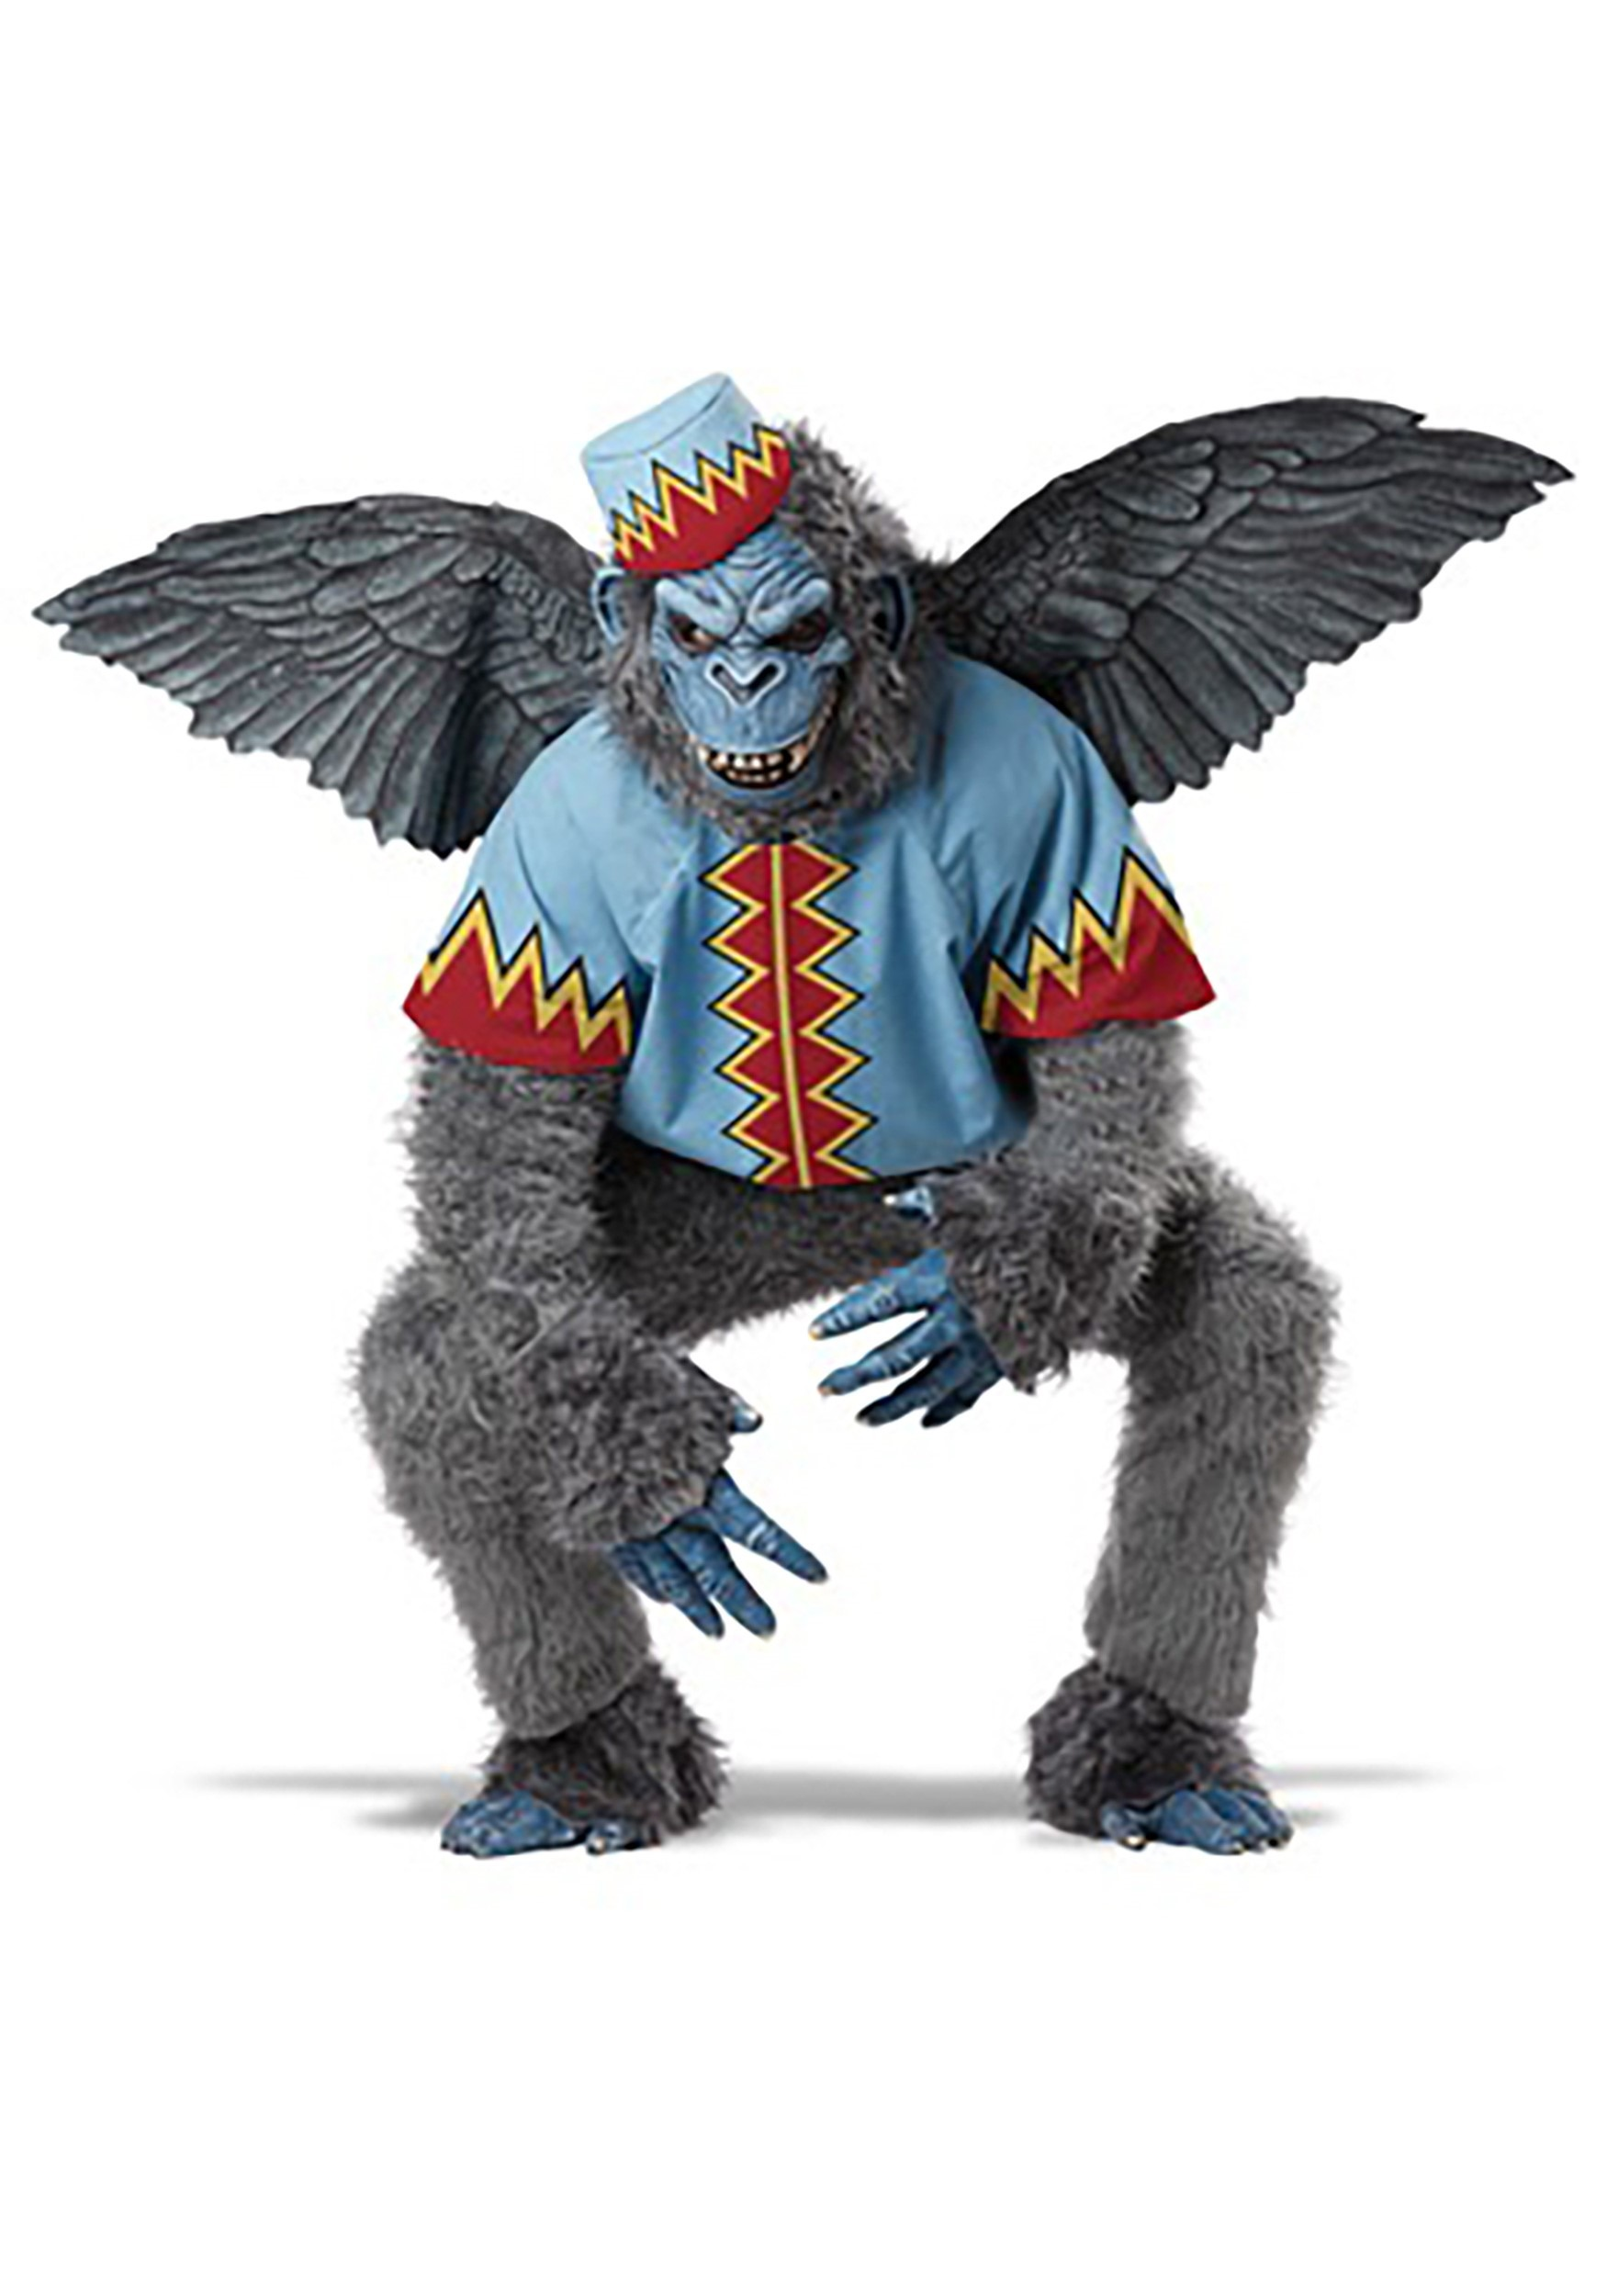 Adult Scary Winged Monkey Costume   Movie Character Costumes